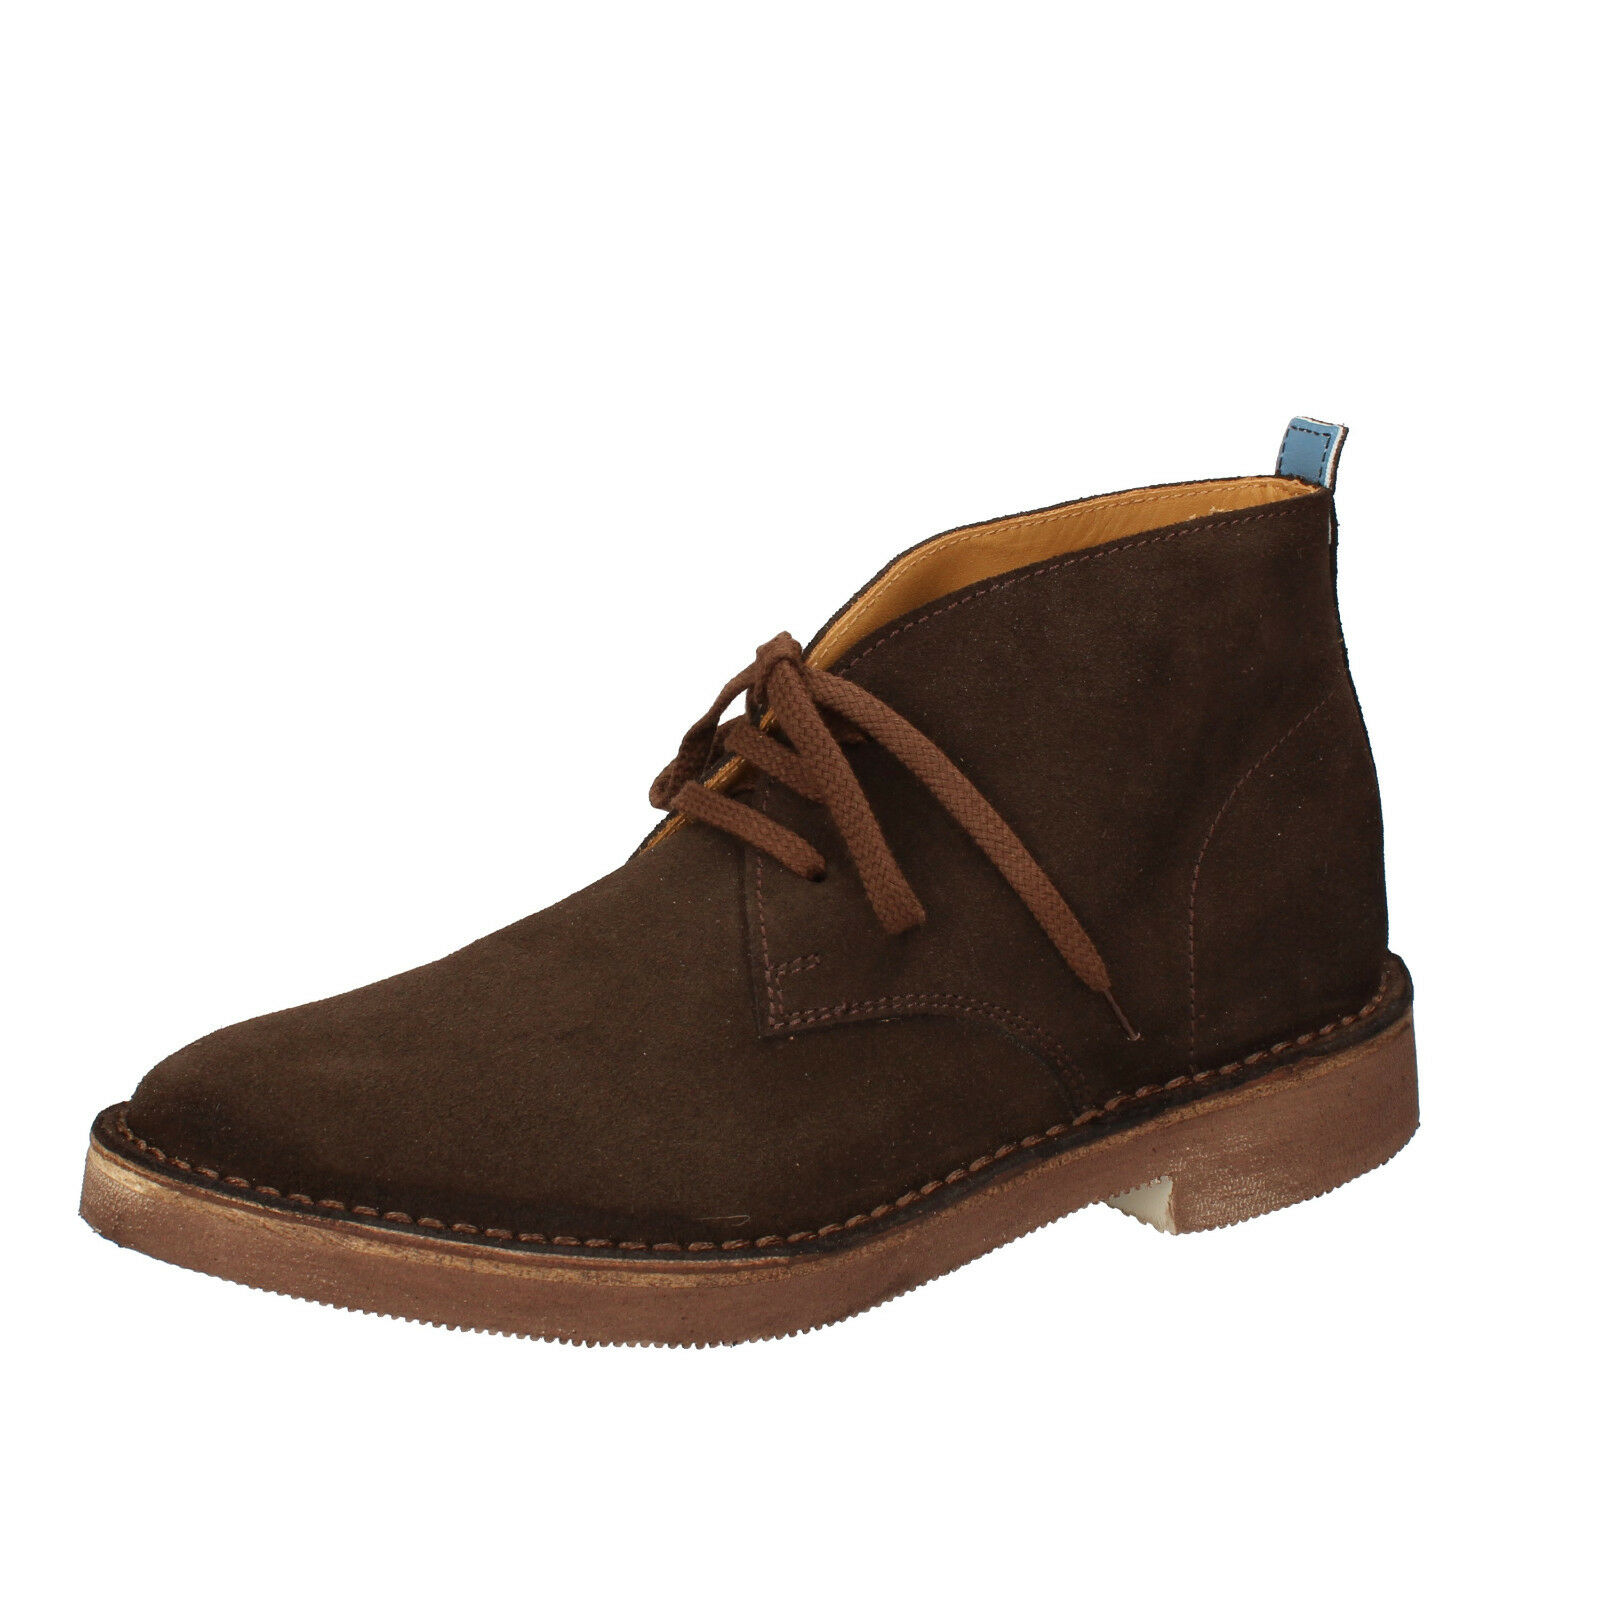 Men's shoes MOMA 9 () desert boots brown suede AB330-E